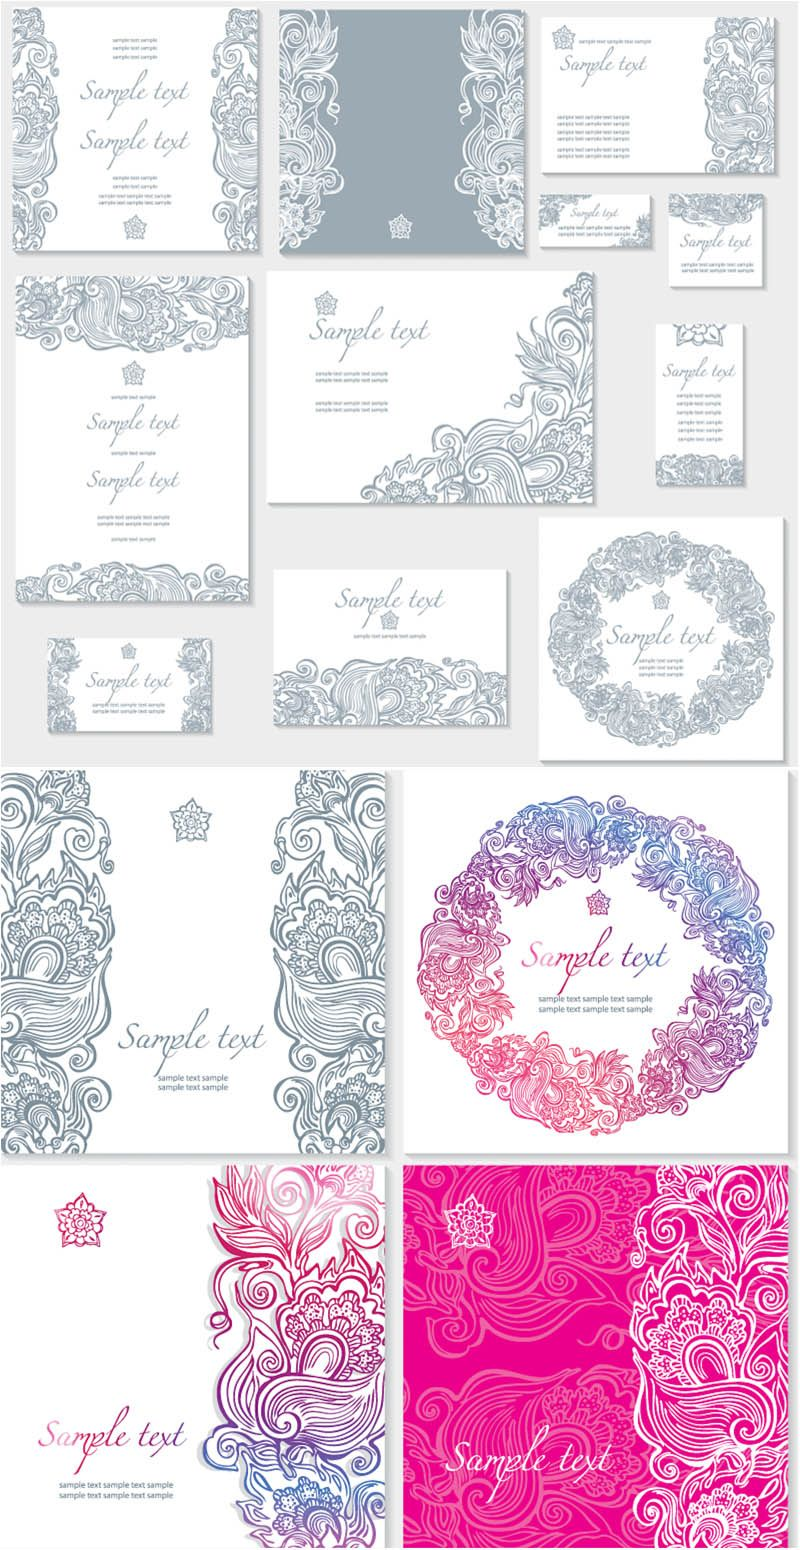 Floral ornate wedding invitation templates vector vector and floral ornate wedding invitation templates vector stopboris Image collections